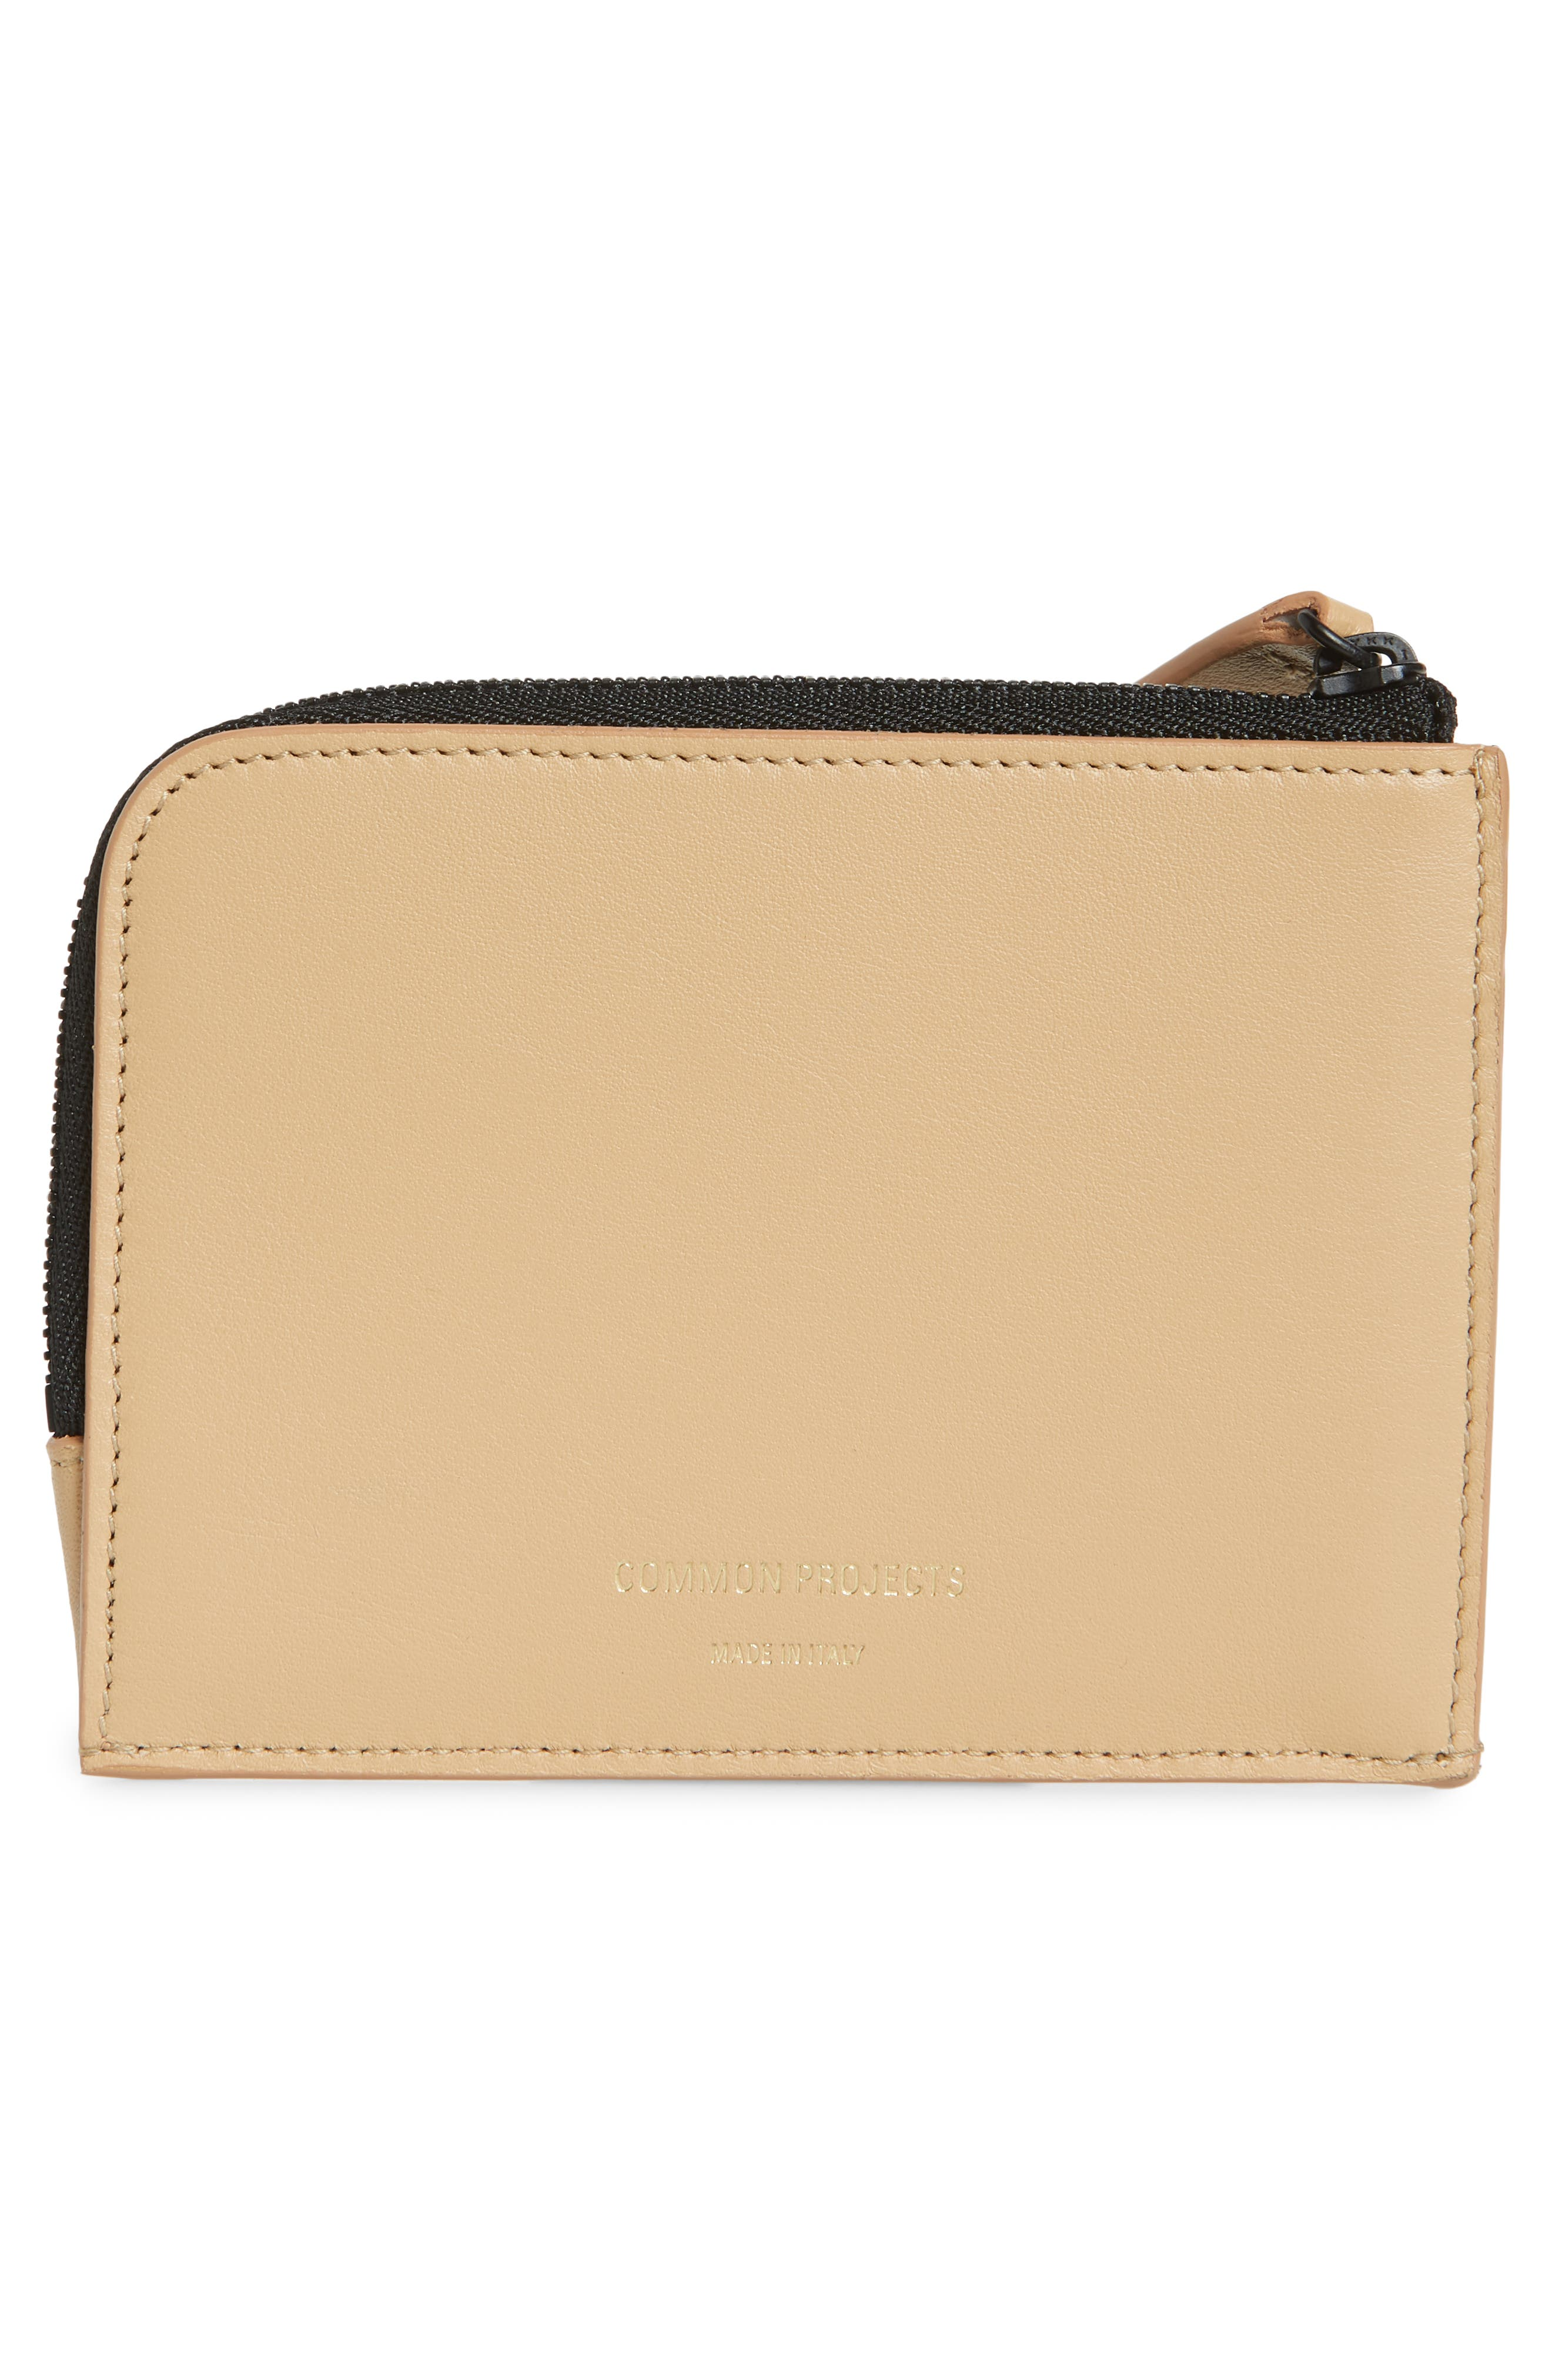 COMMON PROJECTS, Nappa Leather Zip Wallet, Alternate thumbnail 3, color, TAN